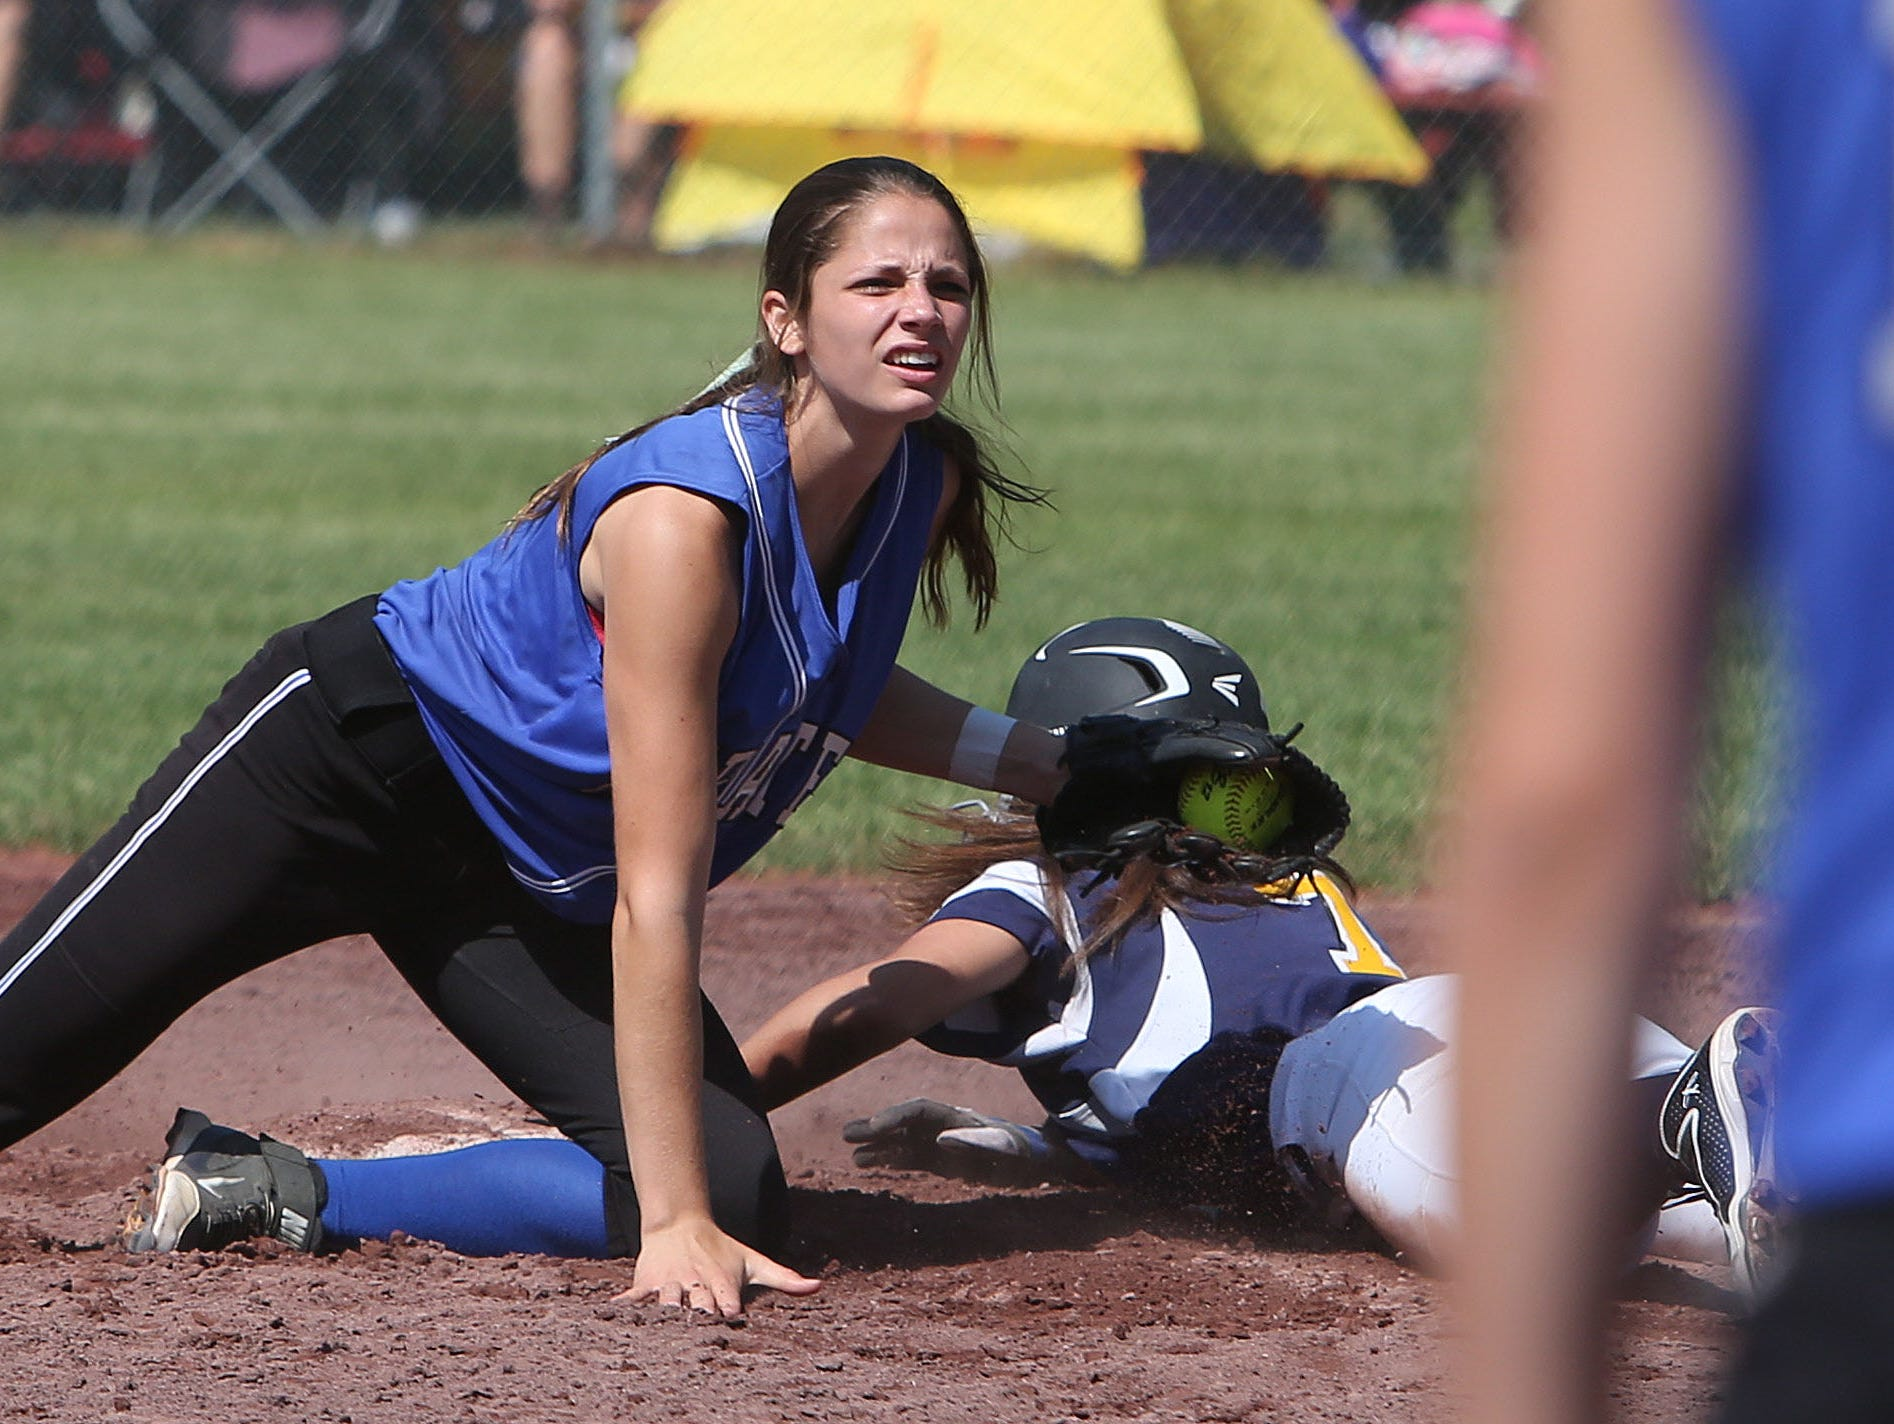 Averill Park defeated Pearl River 5-2 in the class A NYSPHSAA girls softball semifinal in South Glens Falls June 13, 2015.